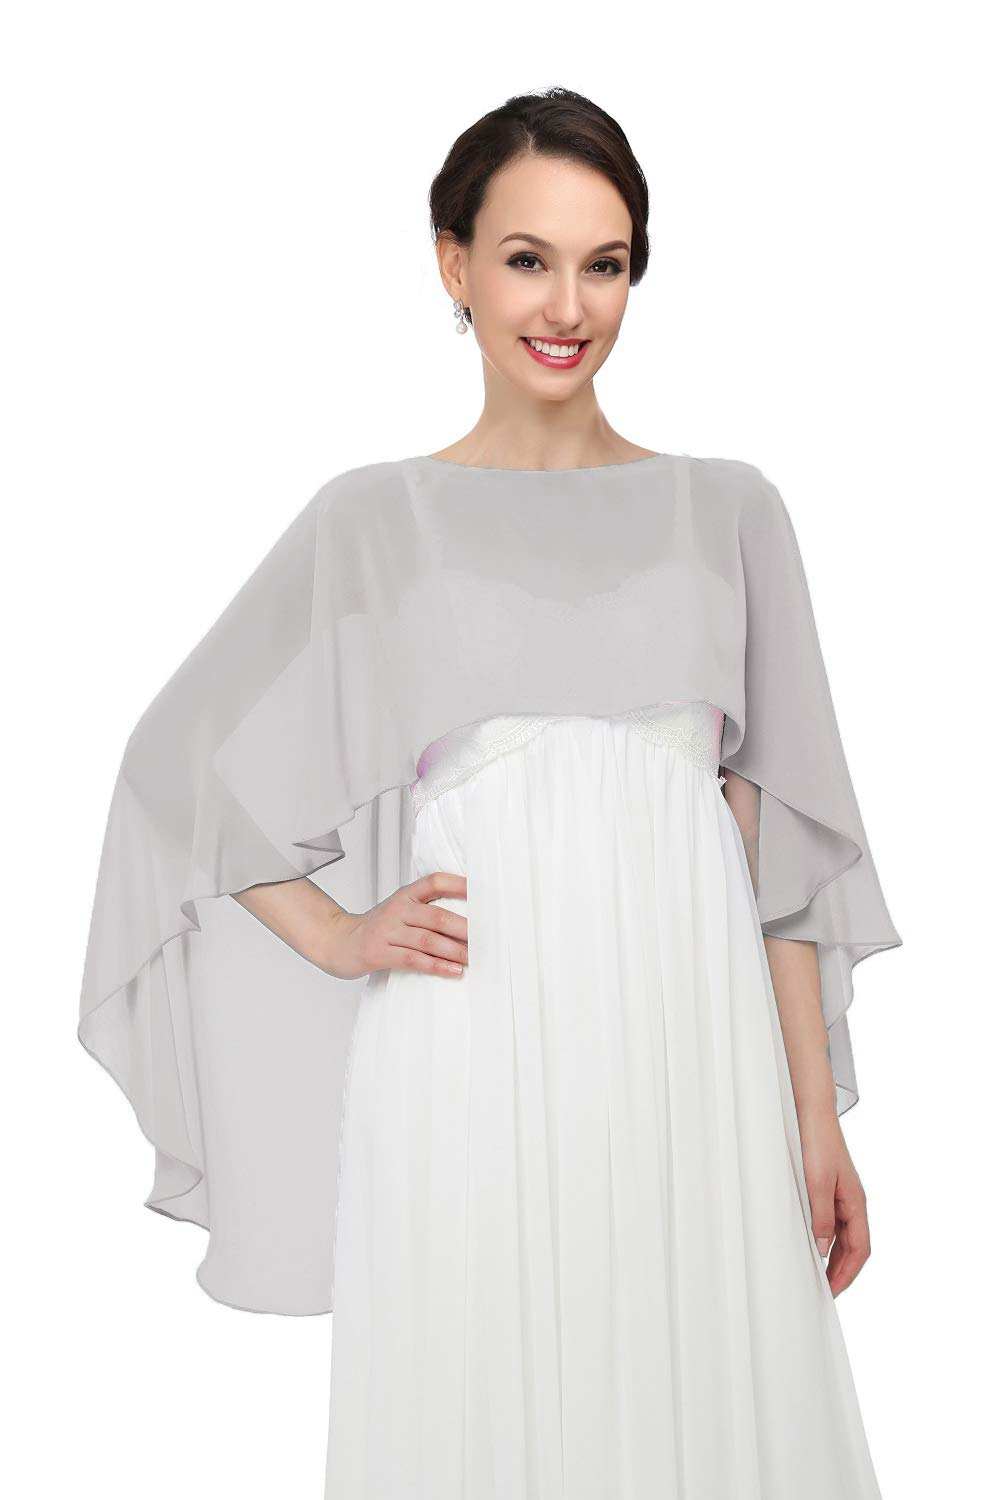 Shawls and Wraps for Evening Dresses Chiffon Wedding Capes Soft Shrugs Gray